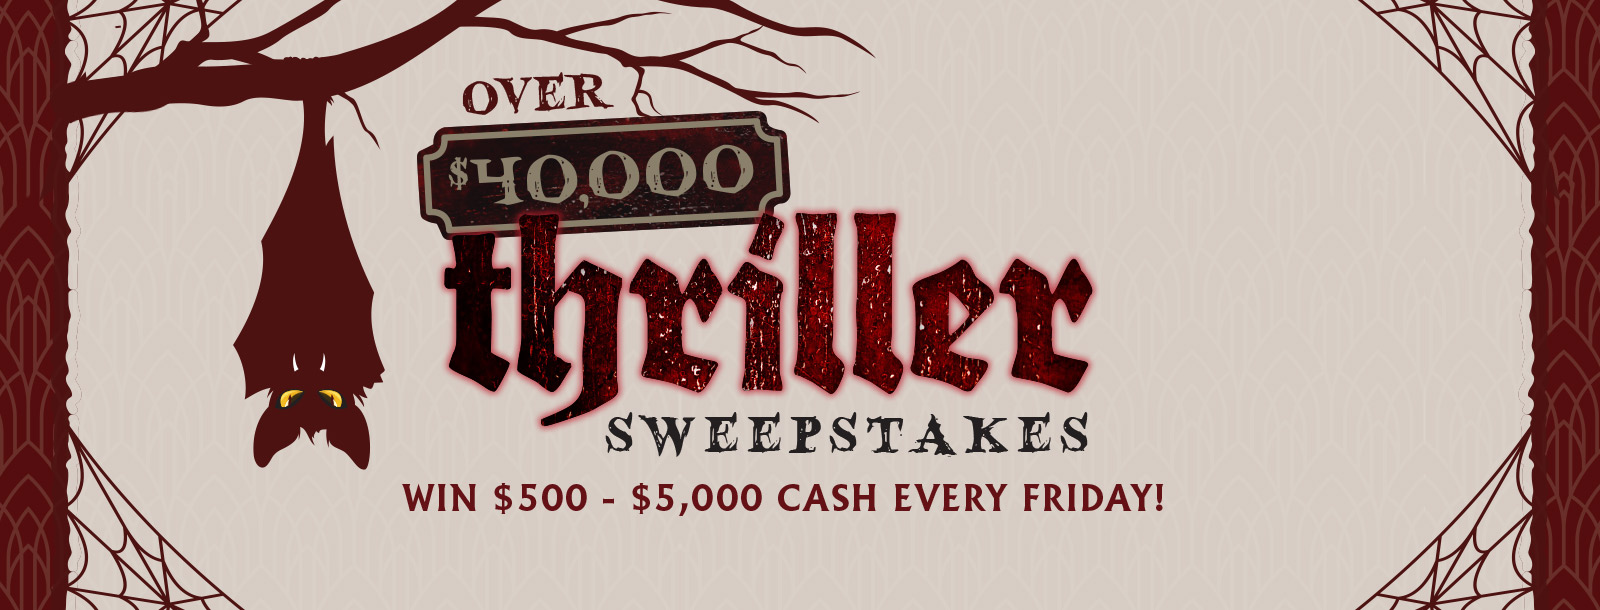 thriller sweepstakes